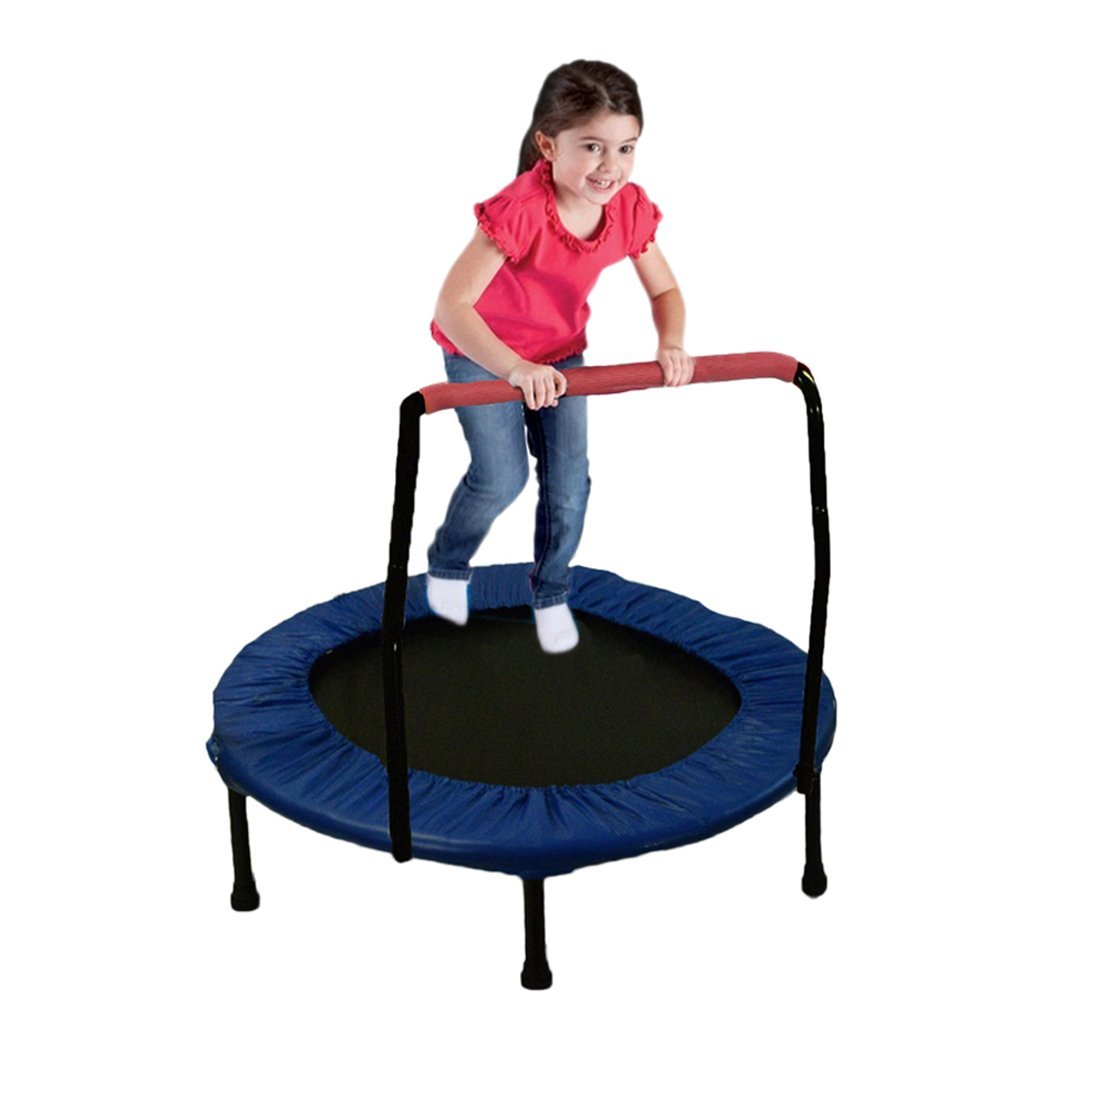 "Mini Exercise Trampoline for Adults And Kids - With Safety Padded Frame- Indoor And Outdoor Fitness Rebounder with Handle Bar for Kids – Portable & Foldable 36"" By Dazzling Toys"